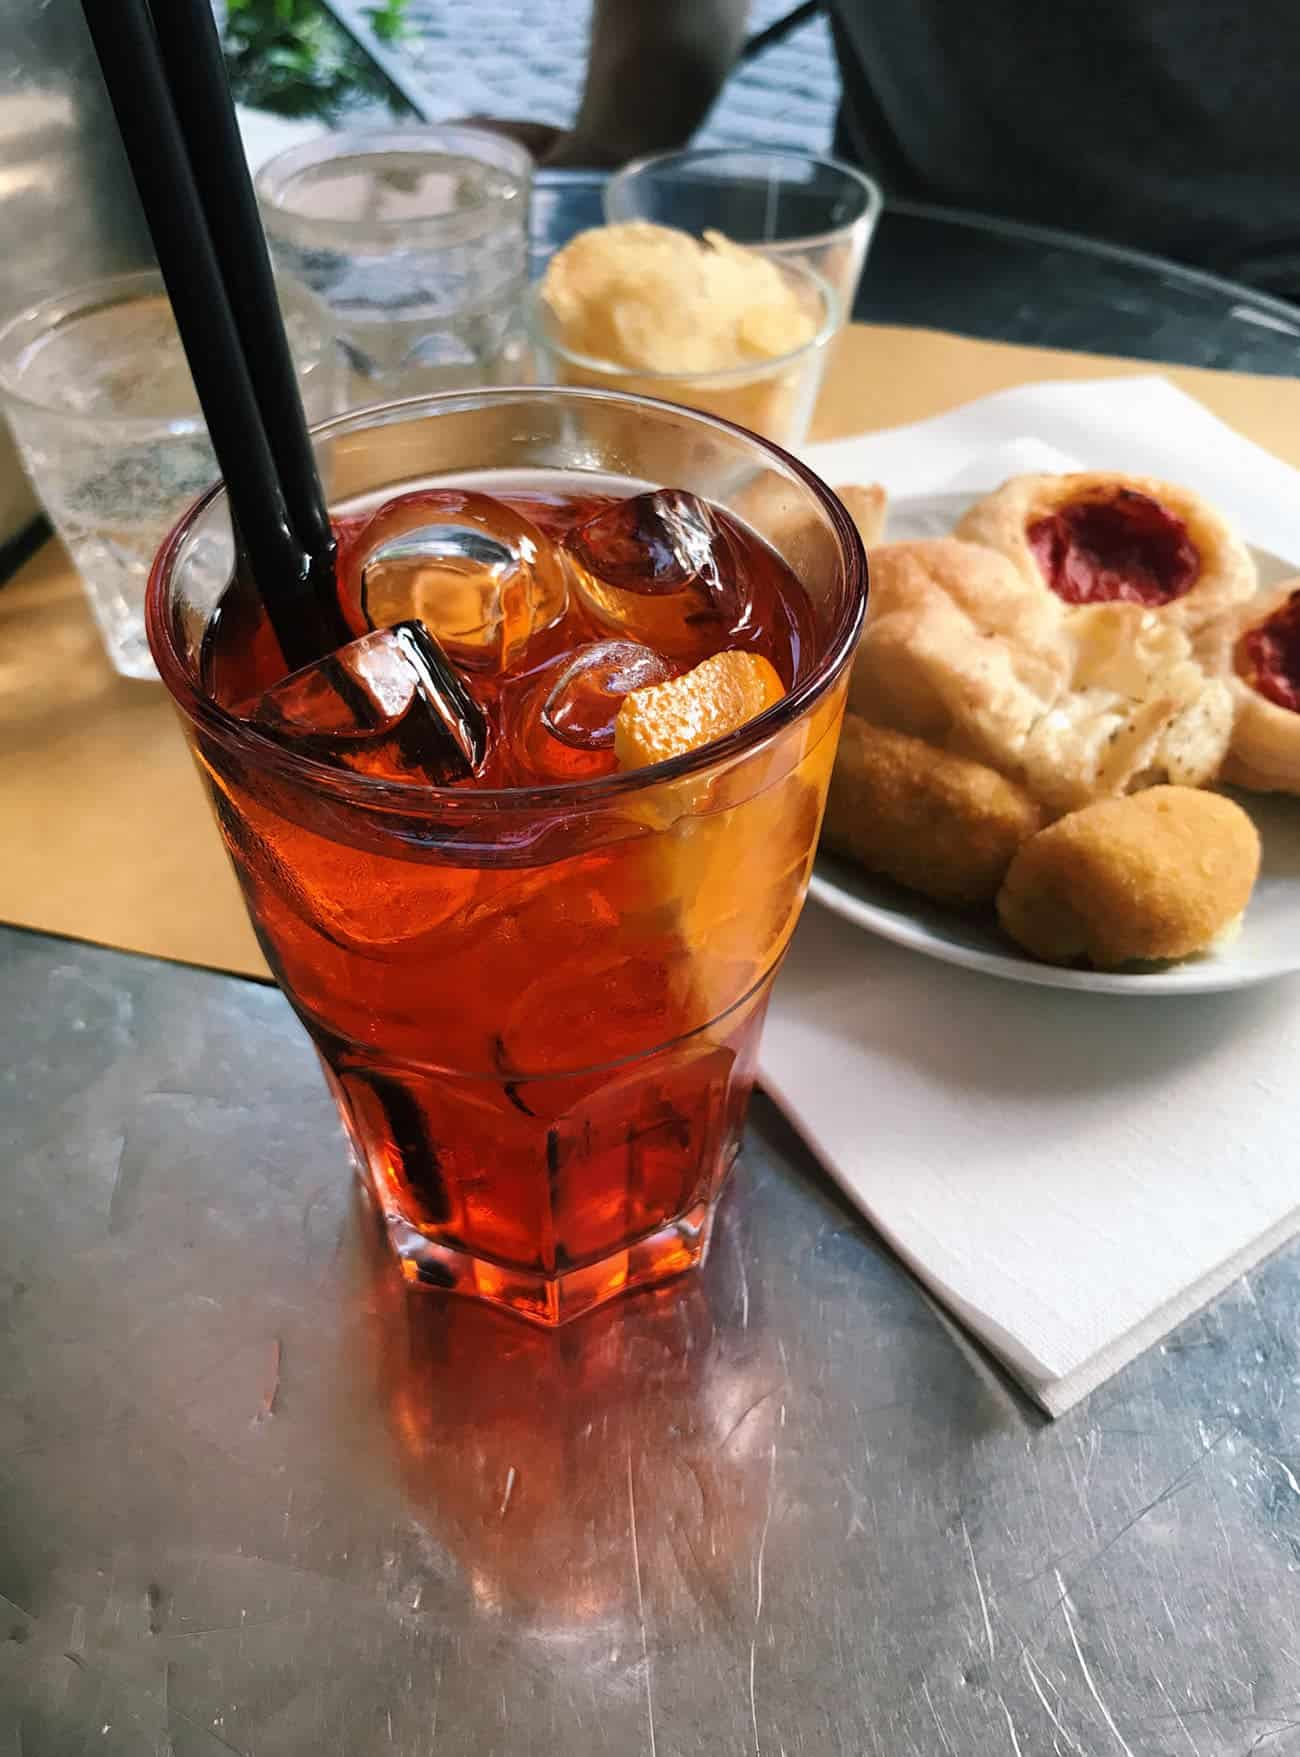 What to Eat in Rome: Recommendations for Pizza, Pasta & Gelato | Aperol spritz